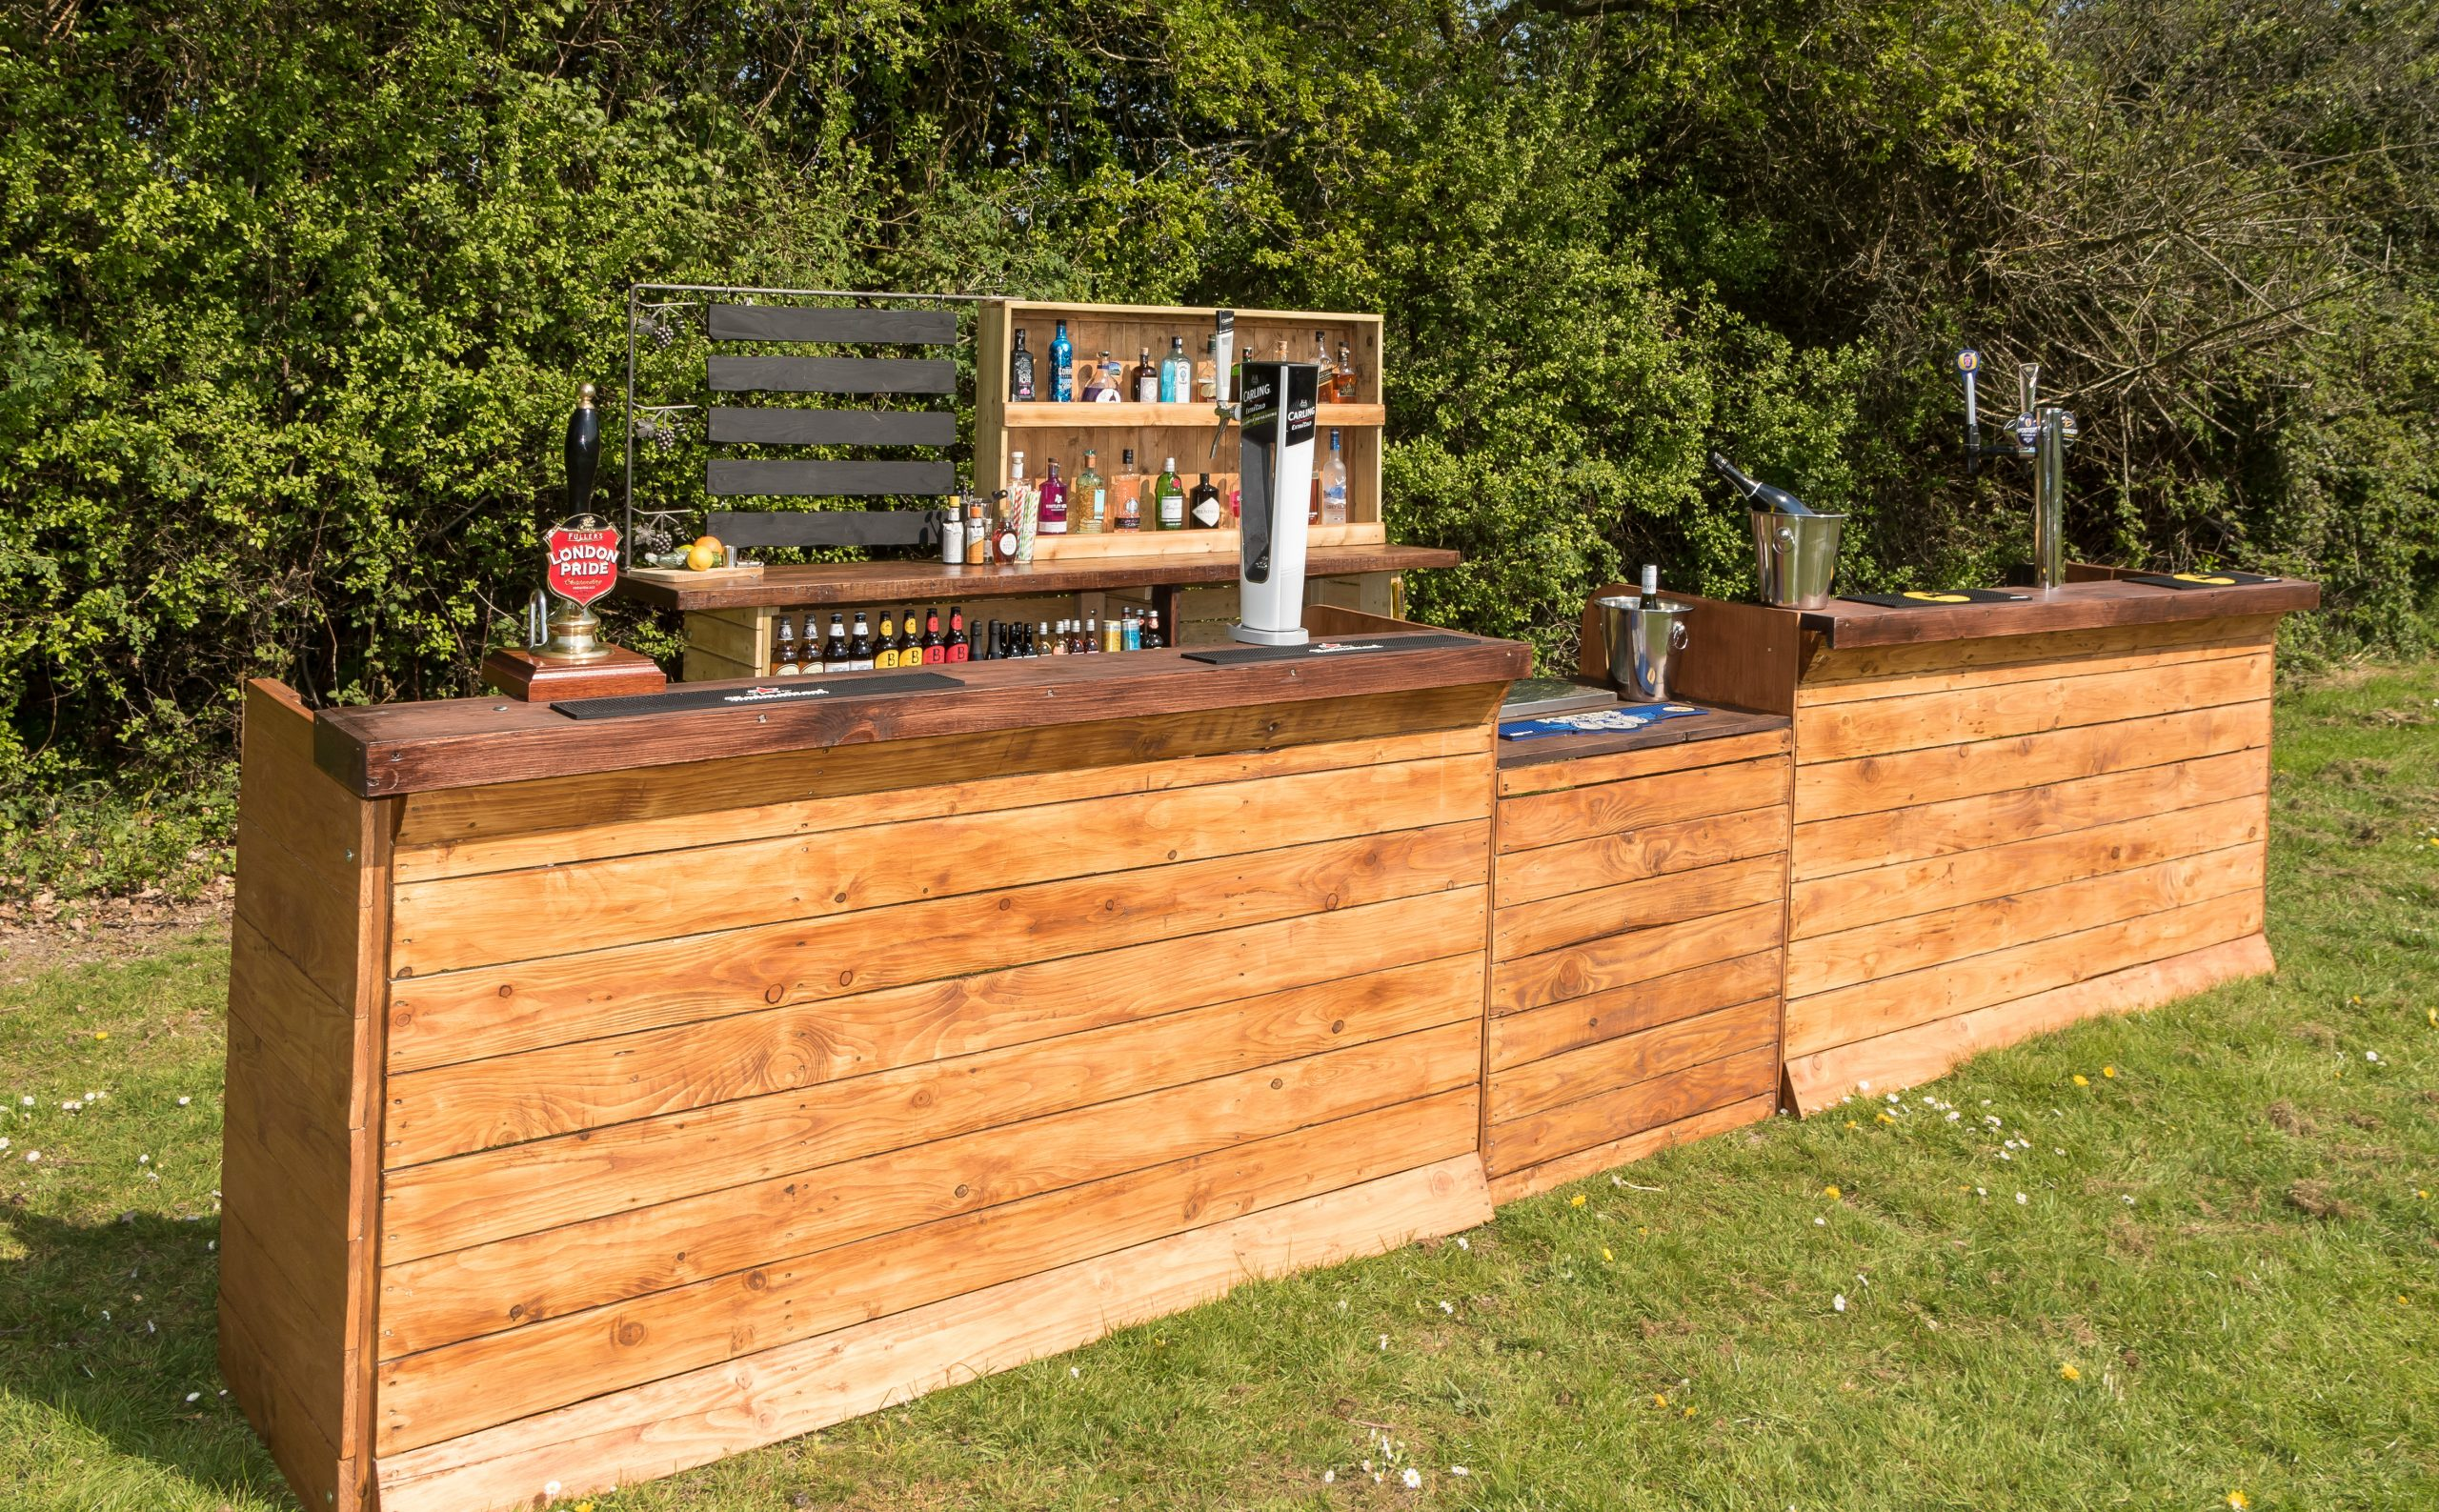 Mobile bars to hire for festivals